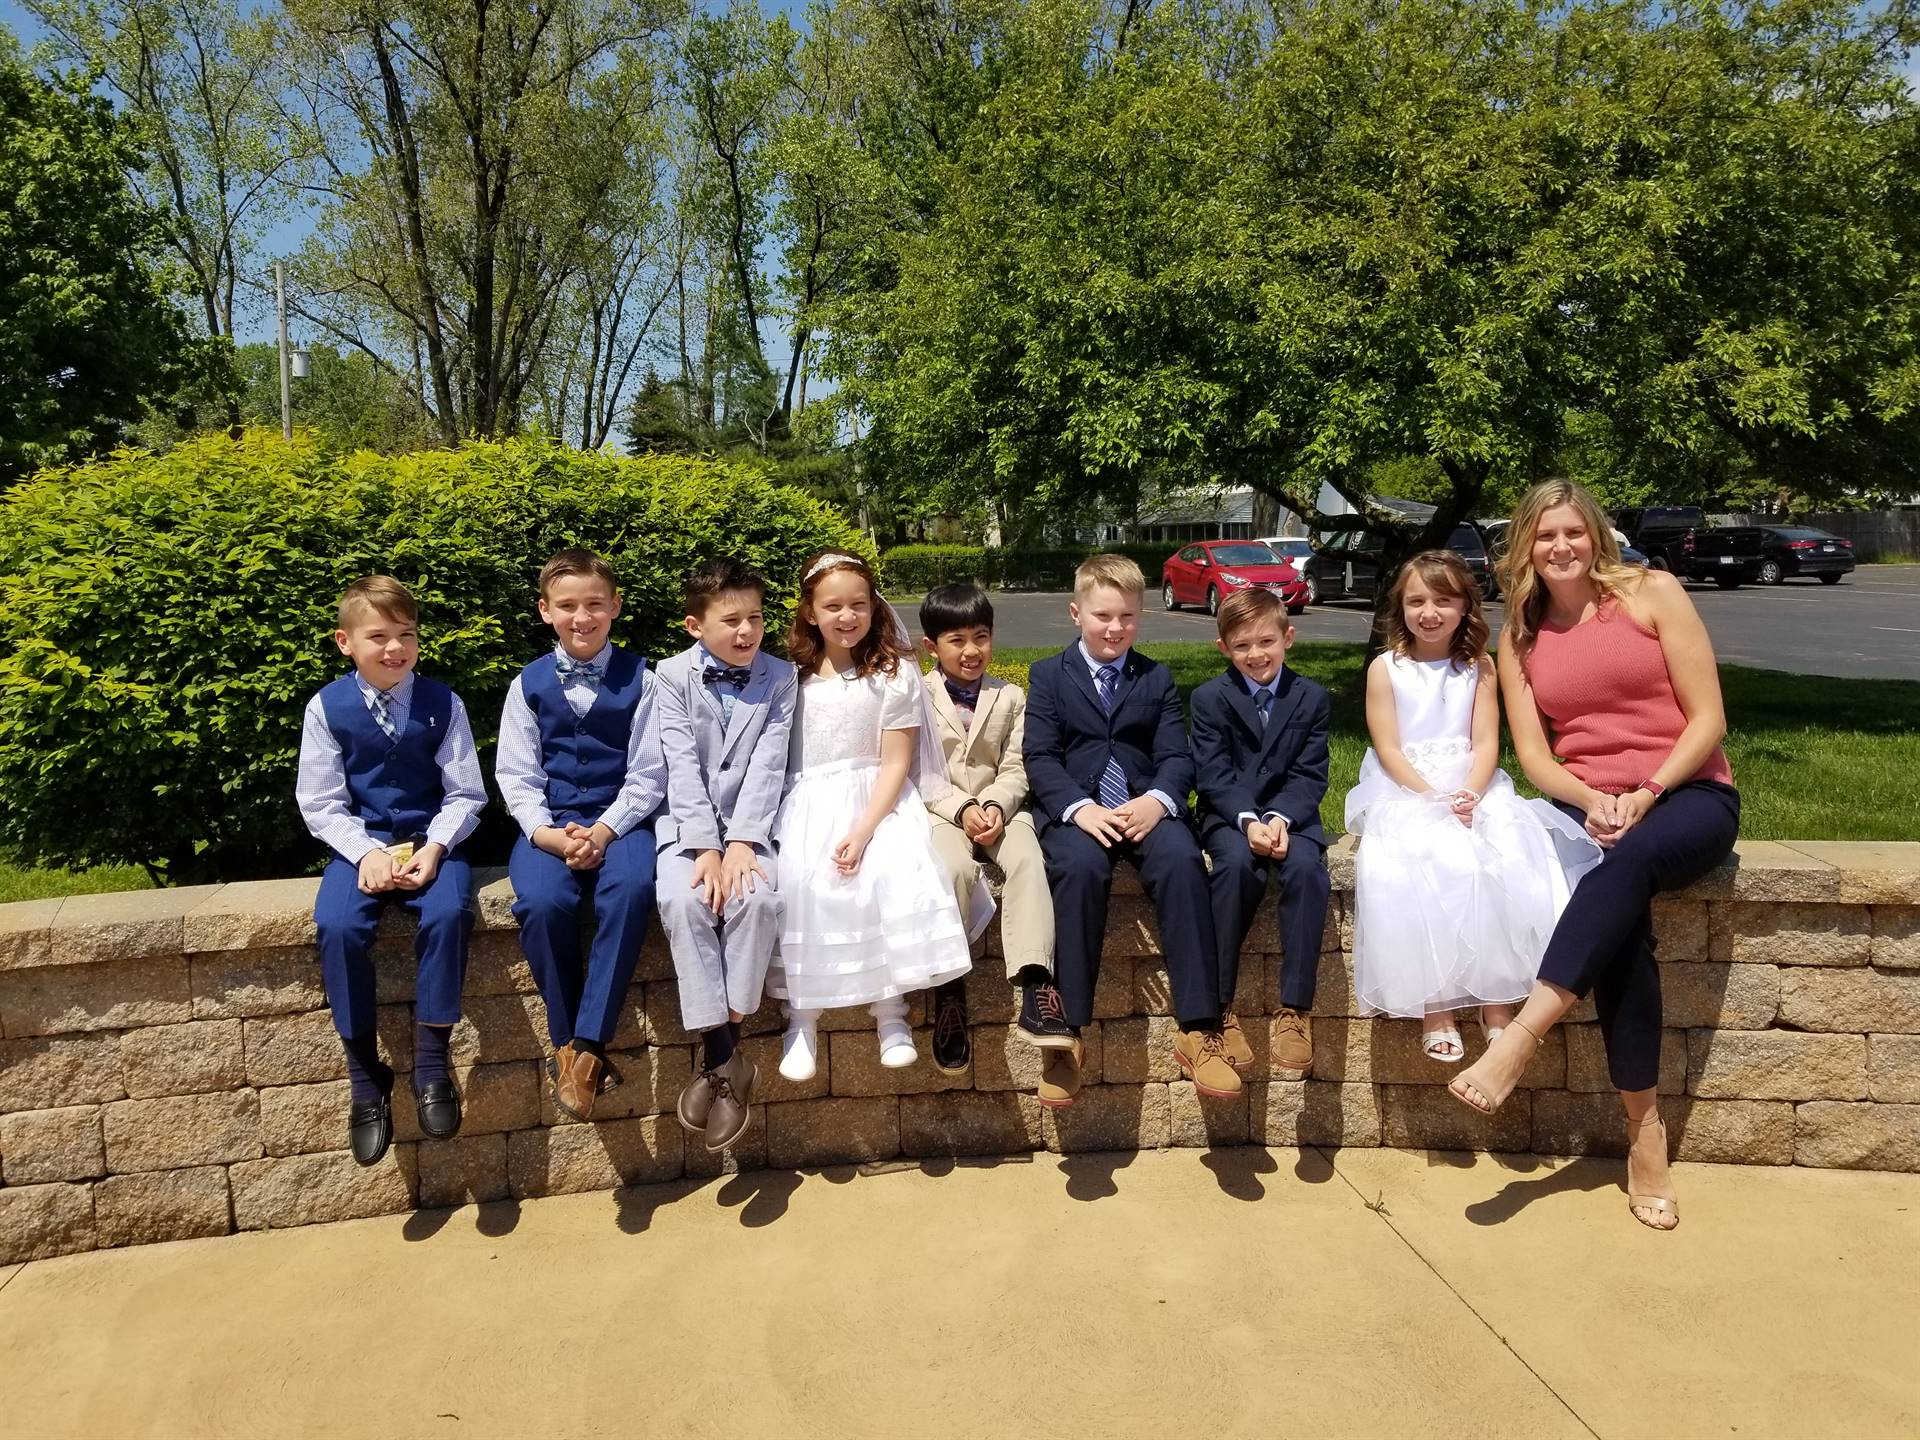 2nd grade teacher celebrate after first communion for the boys and girls